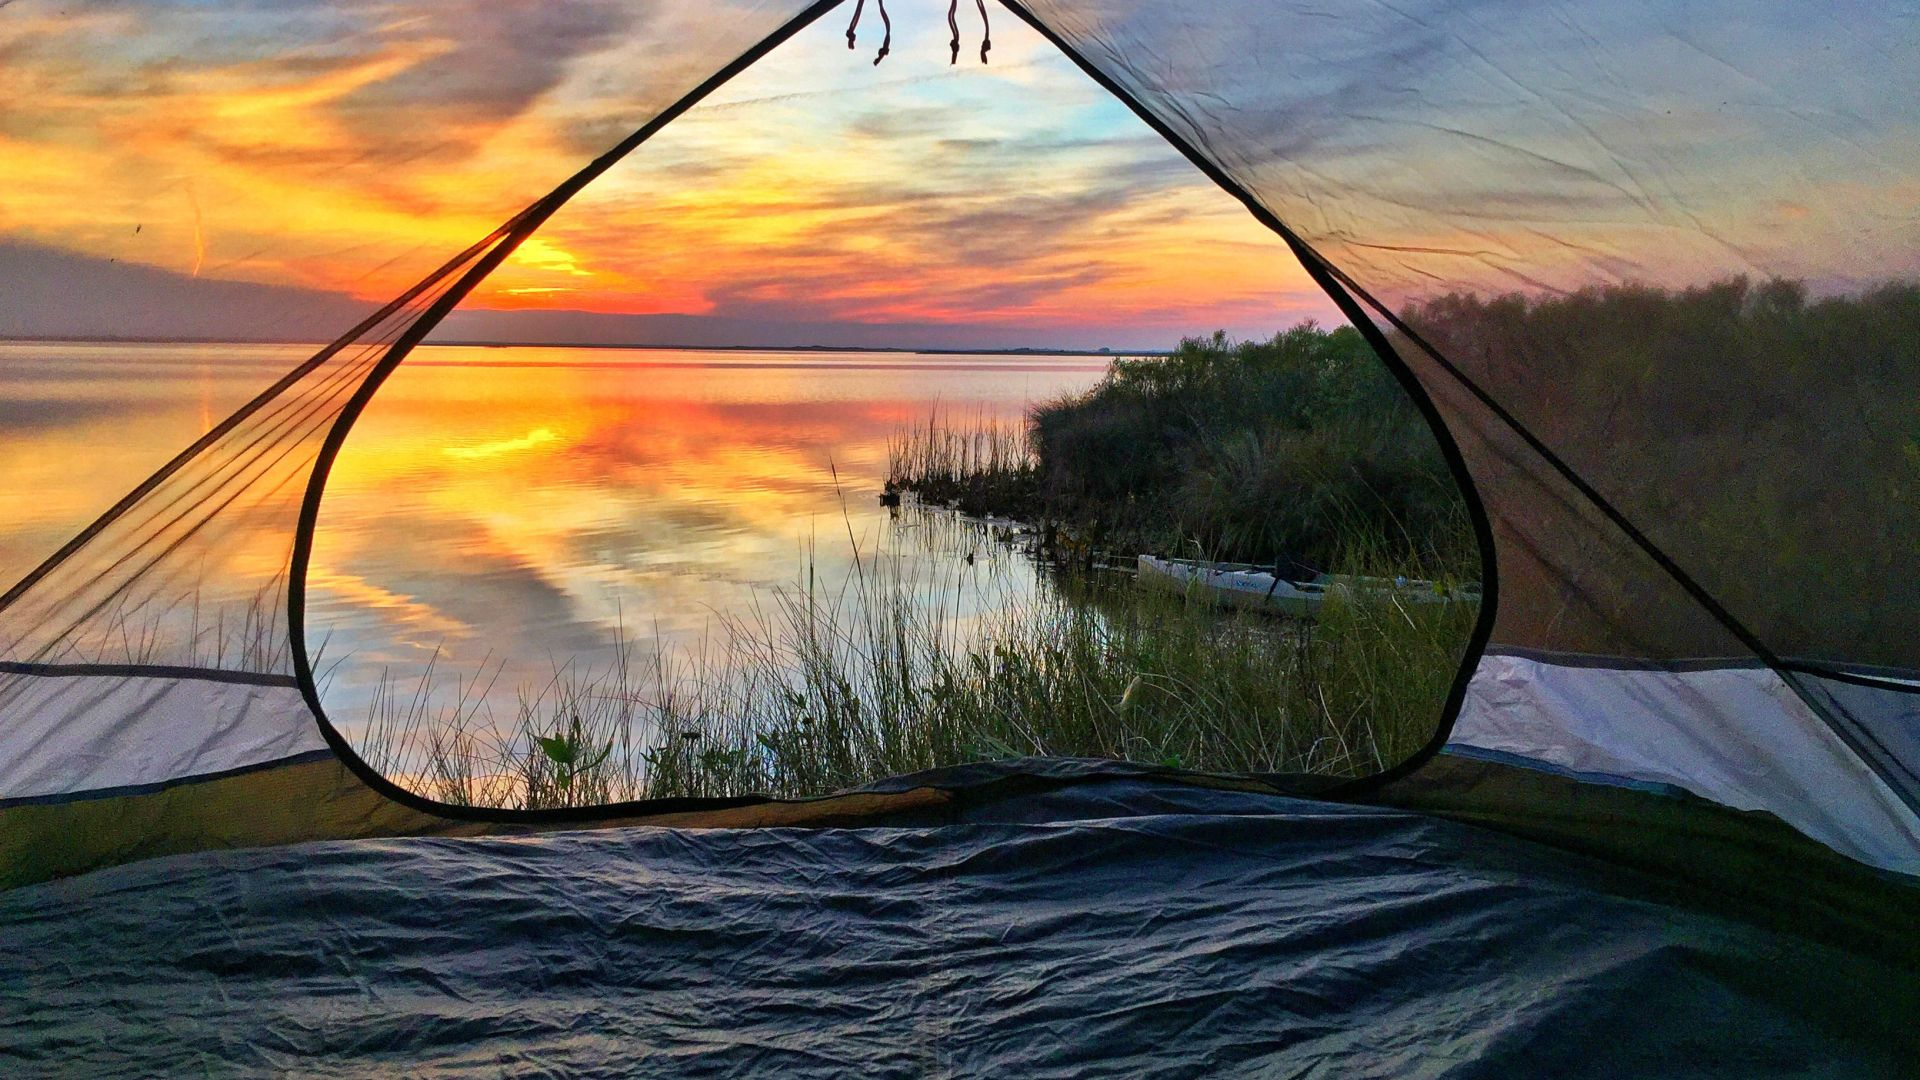 Camping Wallpaper Posted By John Thompson